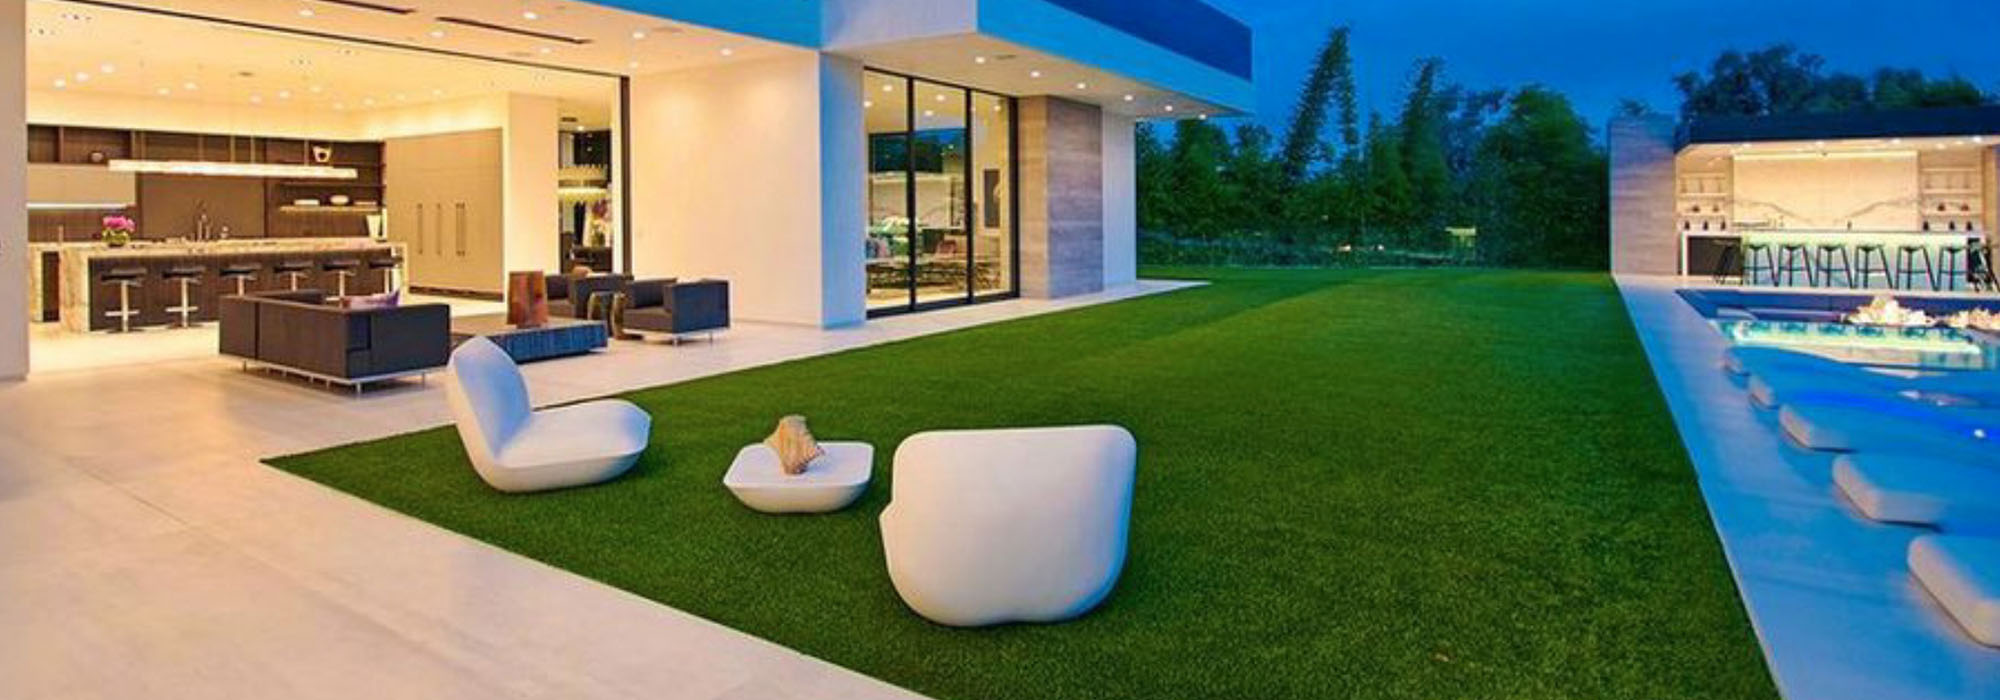 contemporary home with synthetic grass backyard